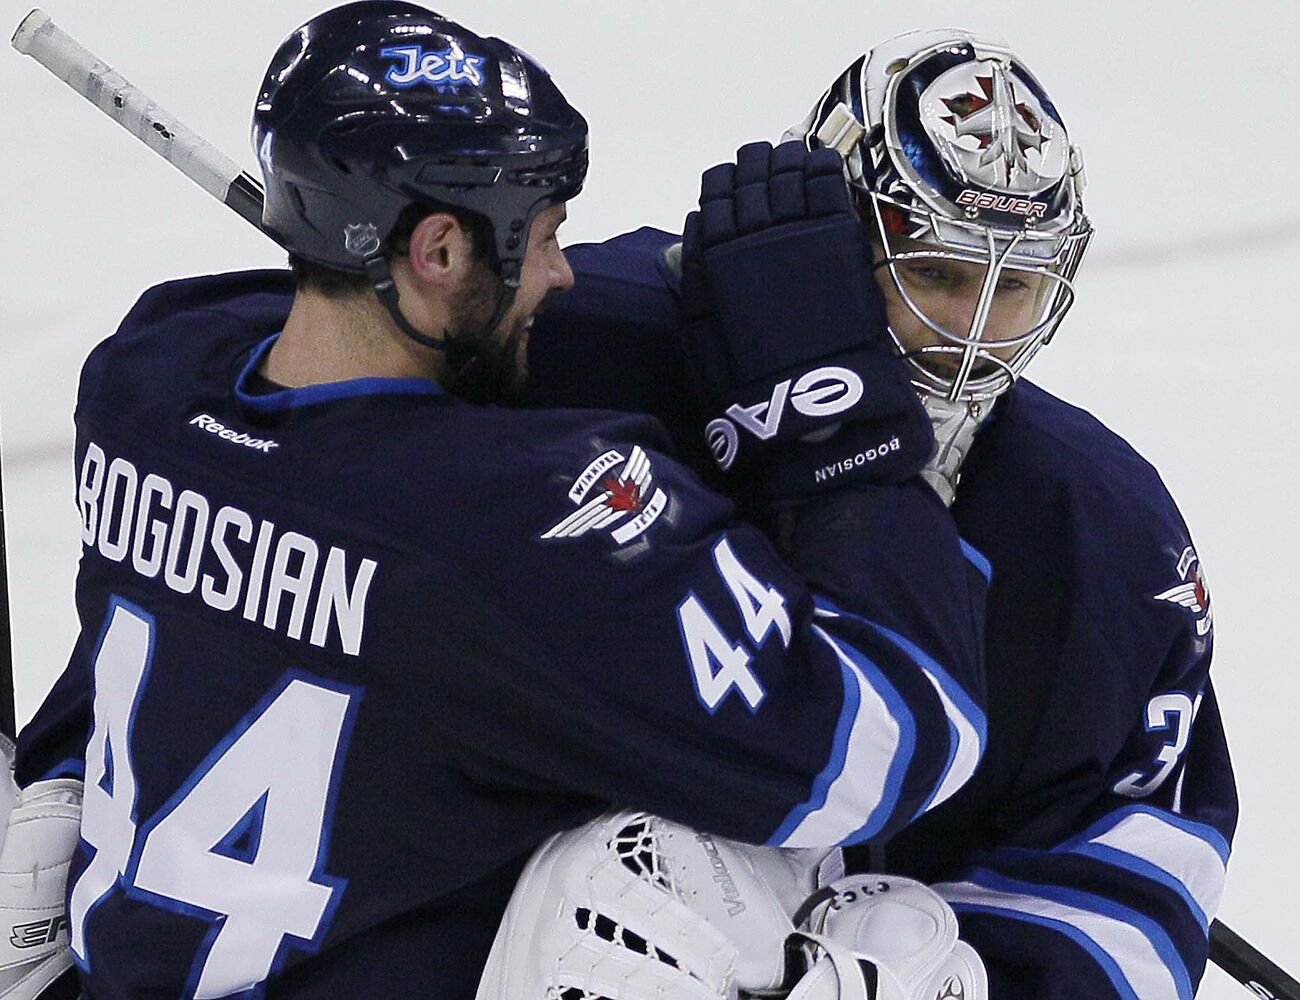 Winnipeg Jets' goaltender Ondrej Pavelec (31) and Zach Bogosian (44) celebrate their NHL win over the over San Jose Sharks in penalty shots. (WINNIPEG FREE PRESS)